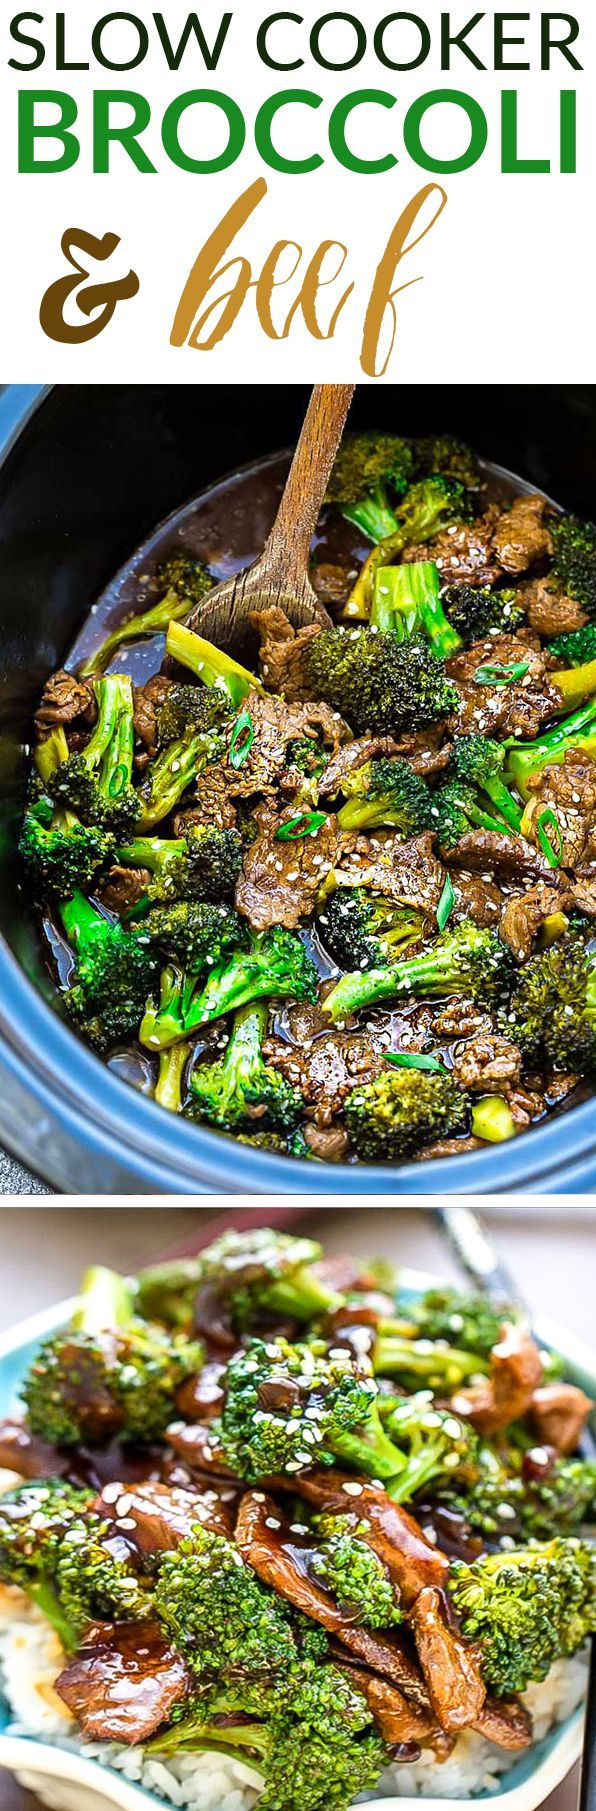 Slow Cooker Beef & Broccoli - an easy set and forget Chinese takeout favorite perfect for busy weeknights. Best of all, the beef cooks up melt-in your mouth delicious in a rich and savory sauce.  Recipe also includes Instant Pot directions and works great for Sunday meal prep for work or school lunchboxes. #beef #broccoli #recipe #chinesetakeout #mealprep #takeoutfakeout #slowcooker